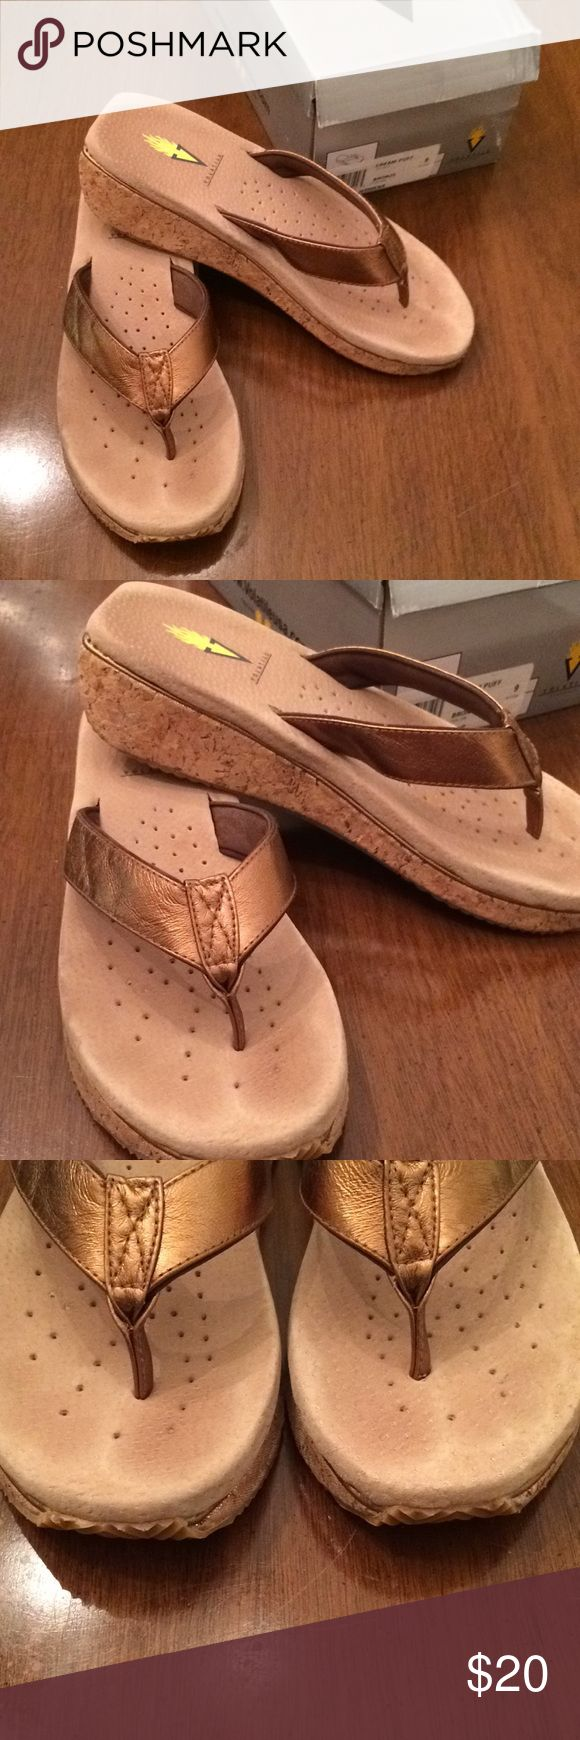 Volatile Cream Puff flip flops size 9 bronze Cute cork wedge flip flops from Volatile in a great bronze color. Size 9. Excellent condition! Neutral color that can be worn with so much. Volatile Shoes Sandals